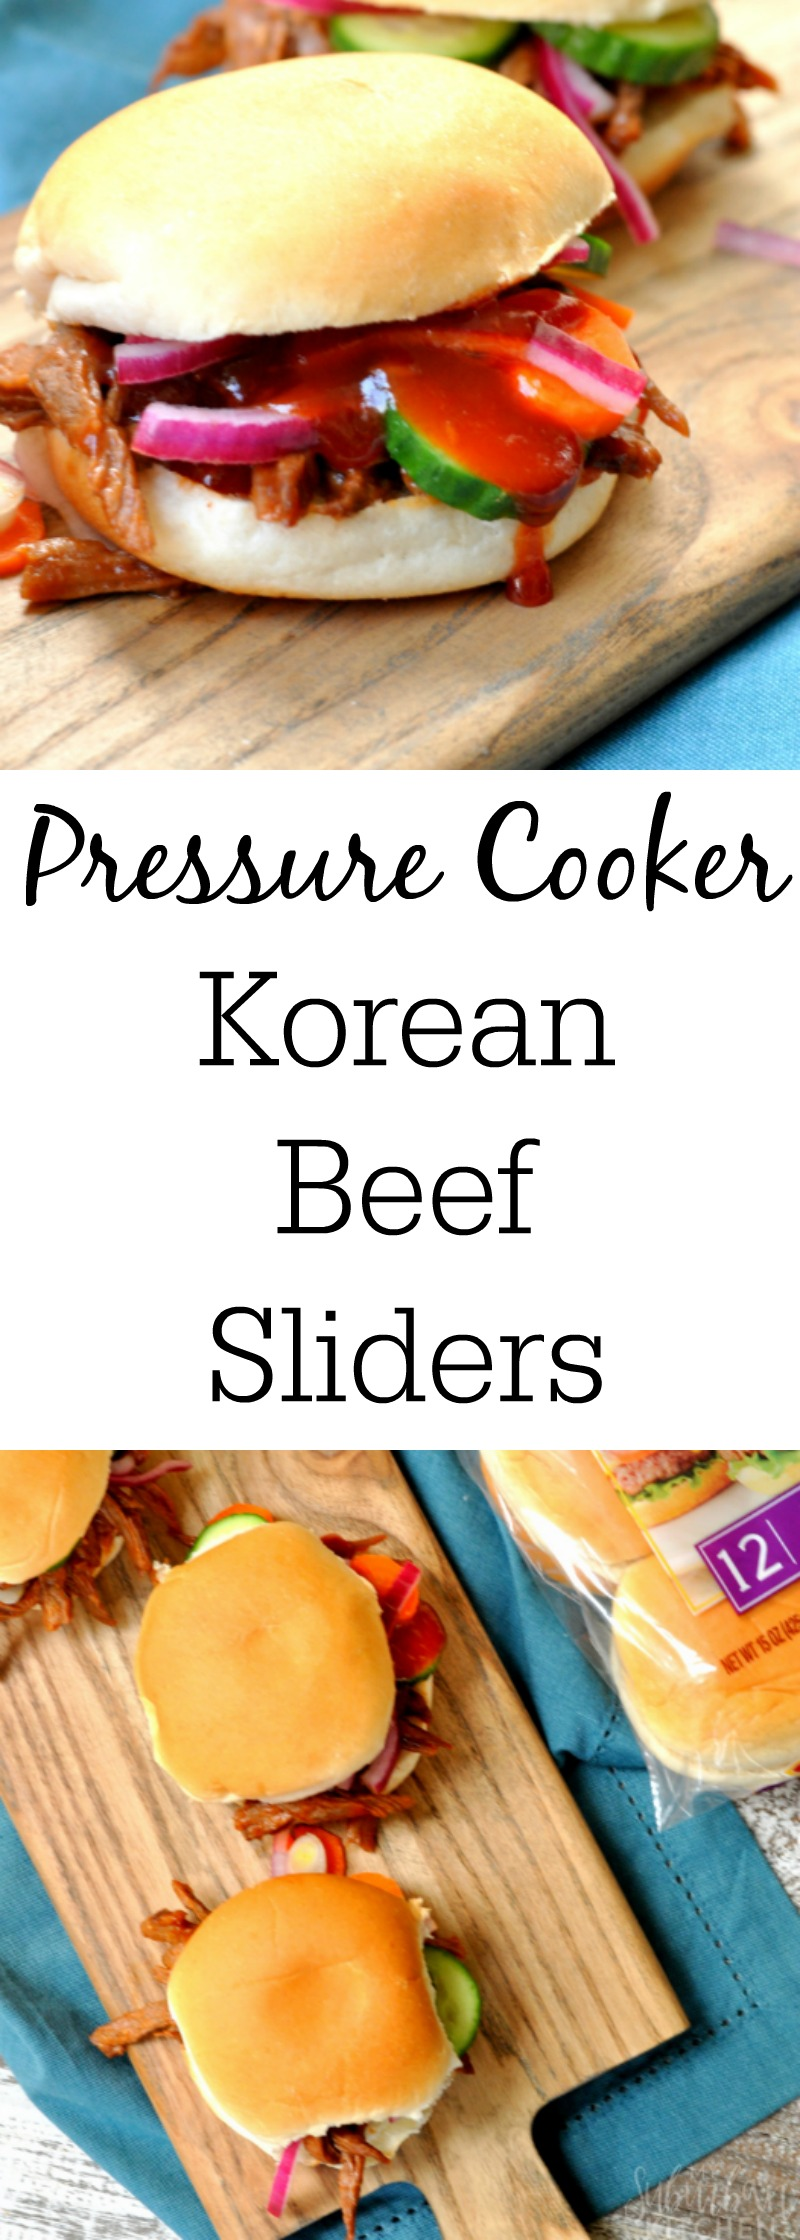 pressure cooker Korean beef sliders photo collage